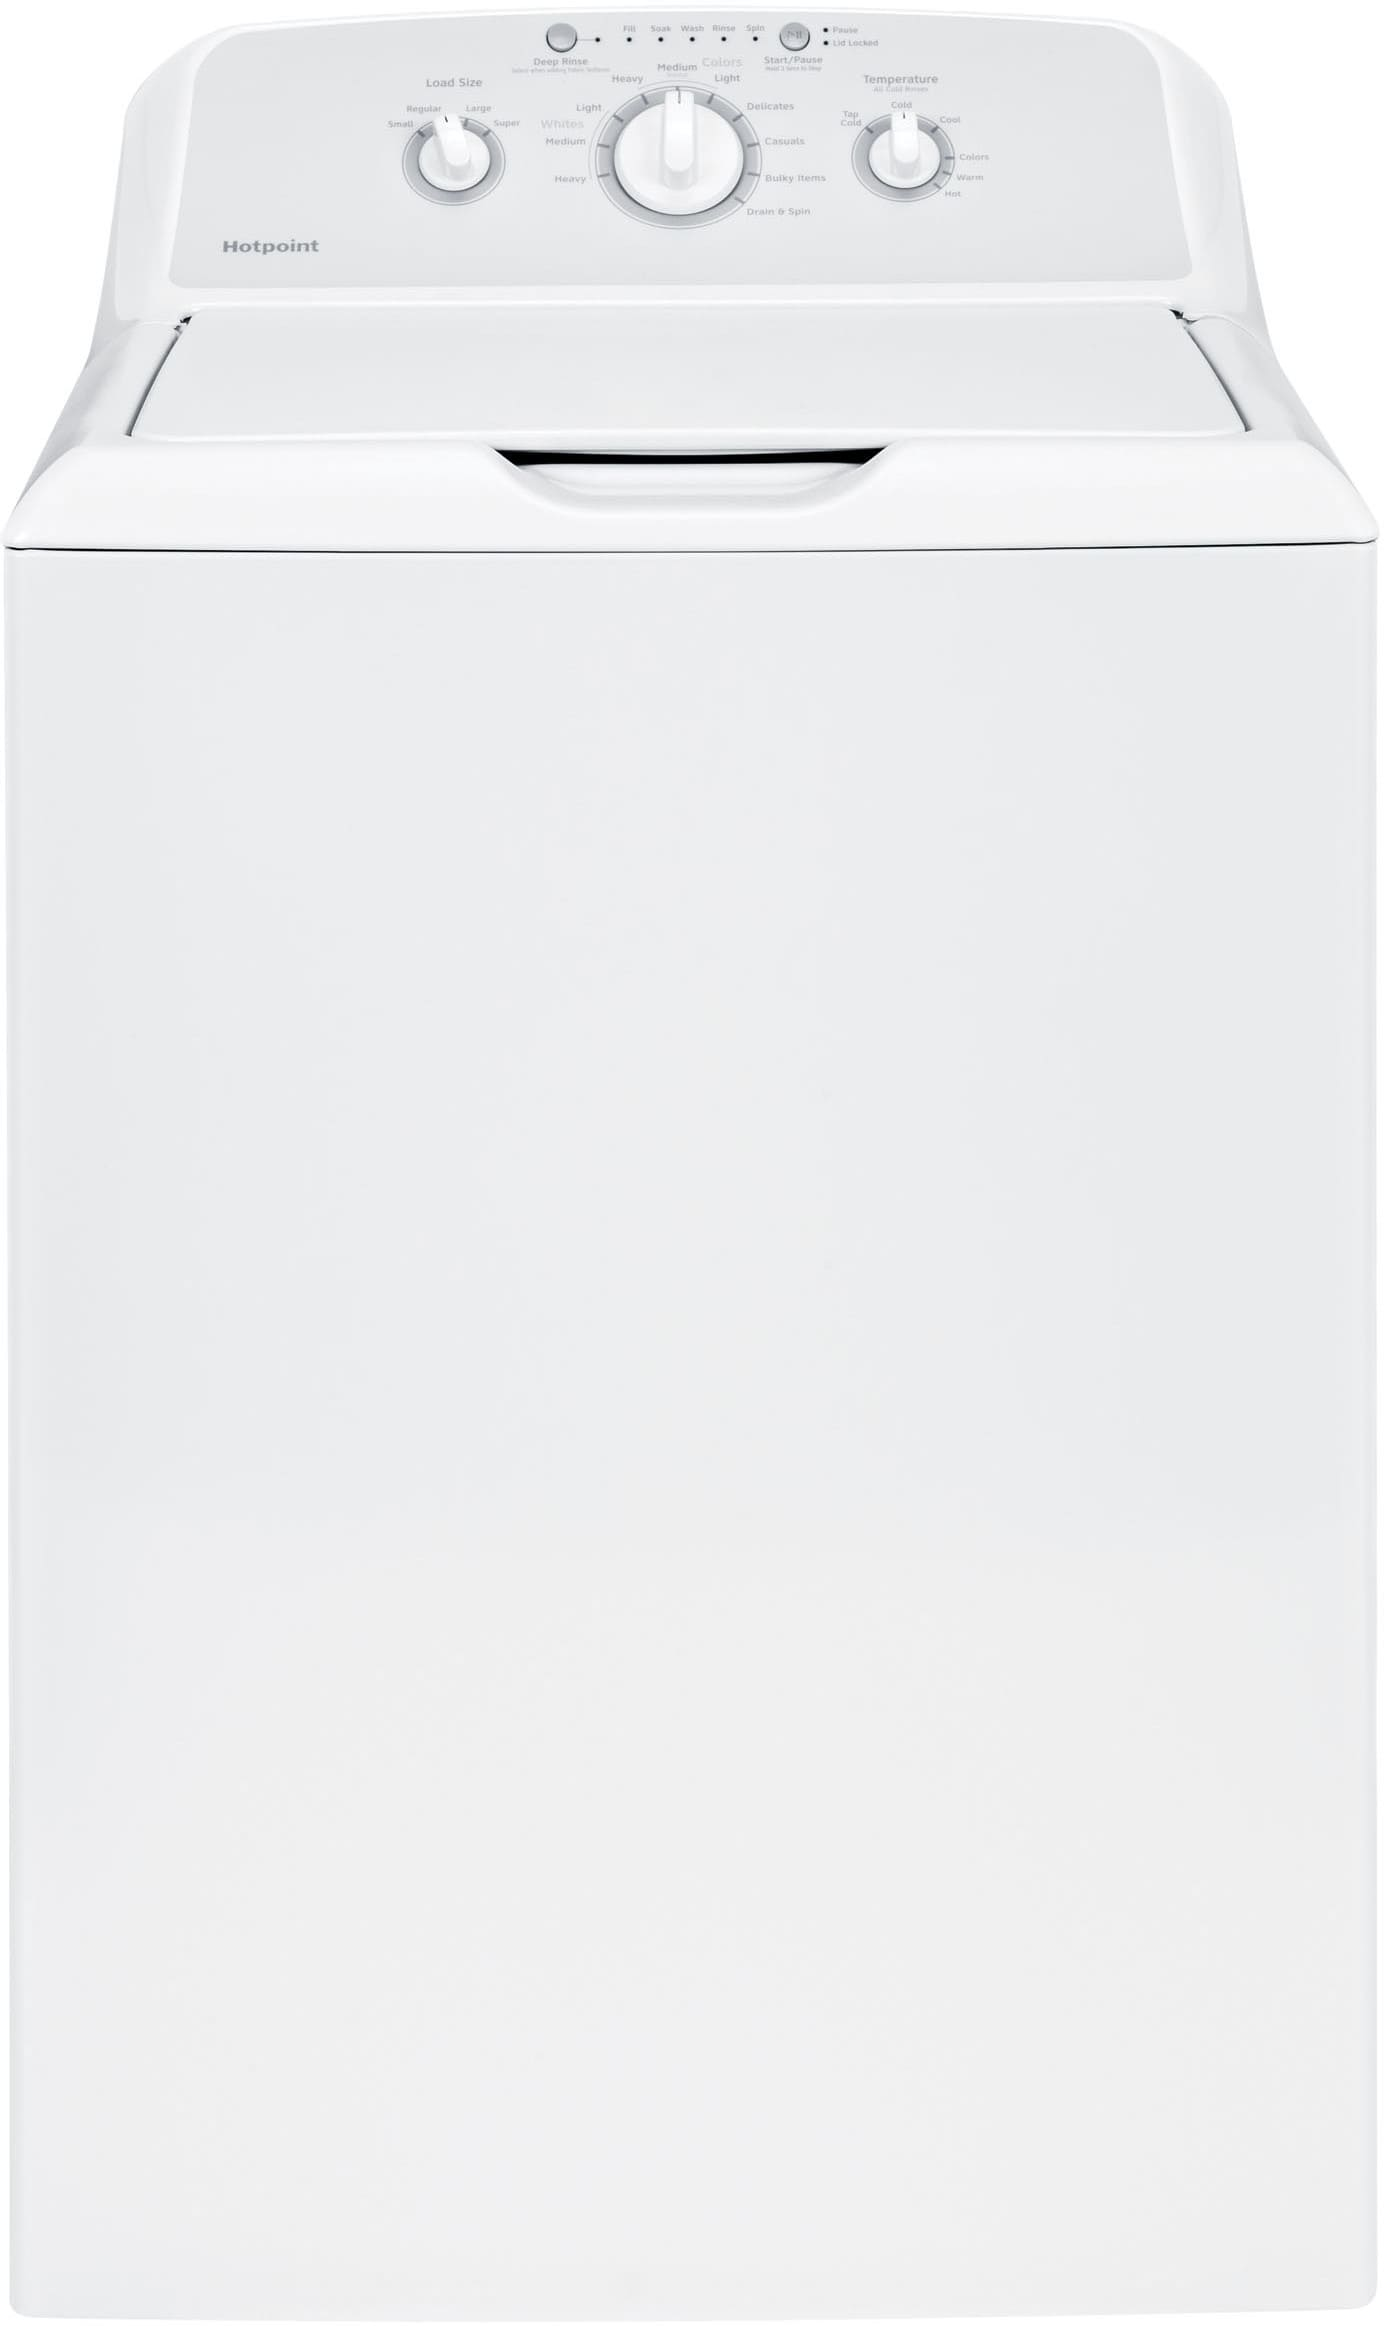 Hotpoint Top Loading Washing Machine Hotpoint Htw240askws 27 Inch Top Load Washer With 36 Cu Ft